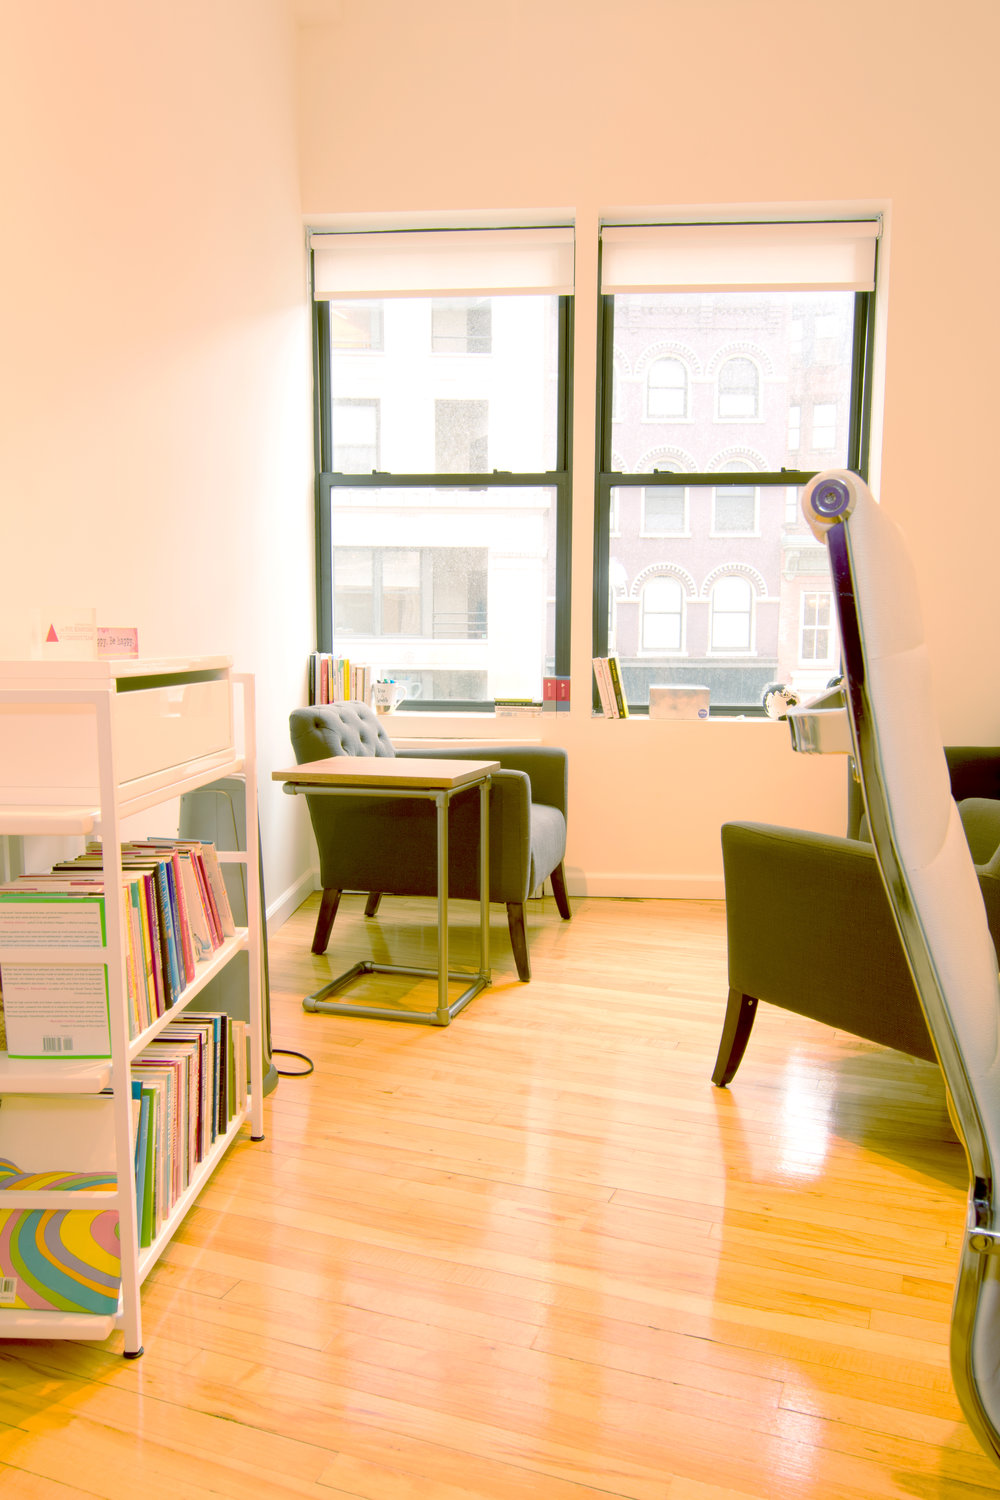 serene-offices-therapy-office-flatiron-21st-street-room-1-2-chairs.jpg